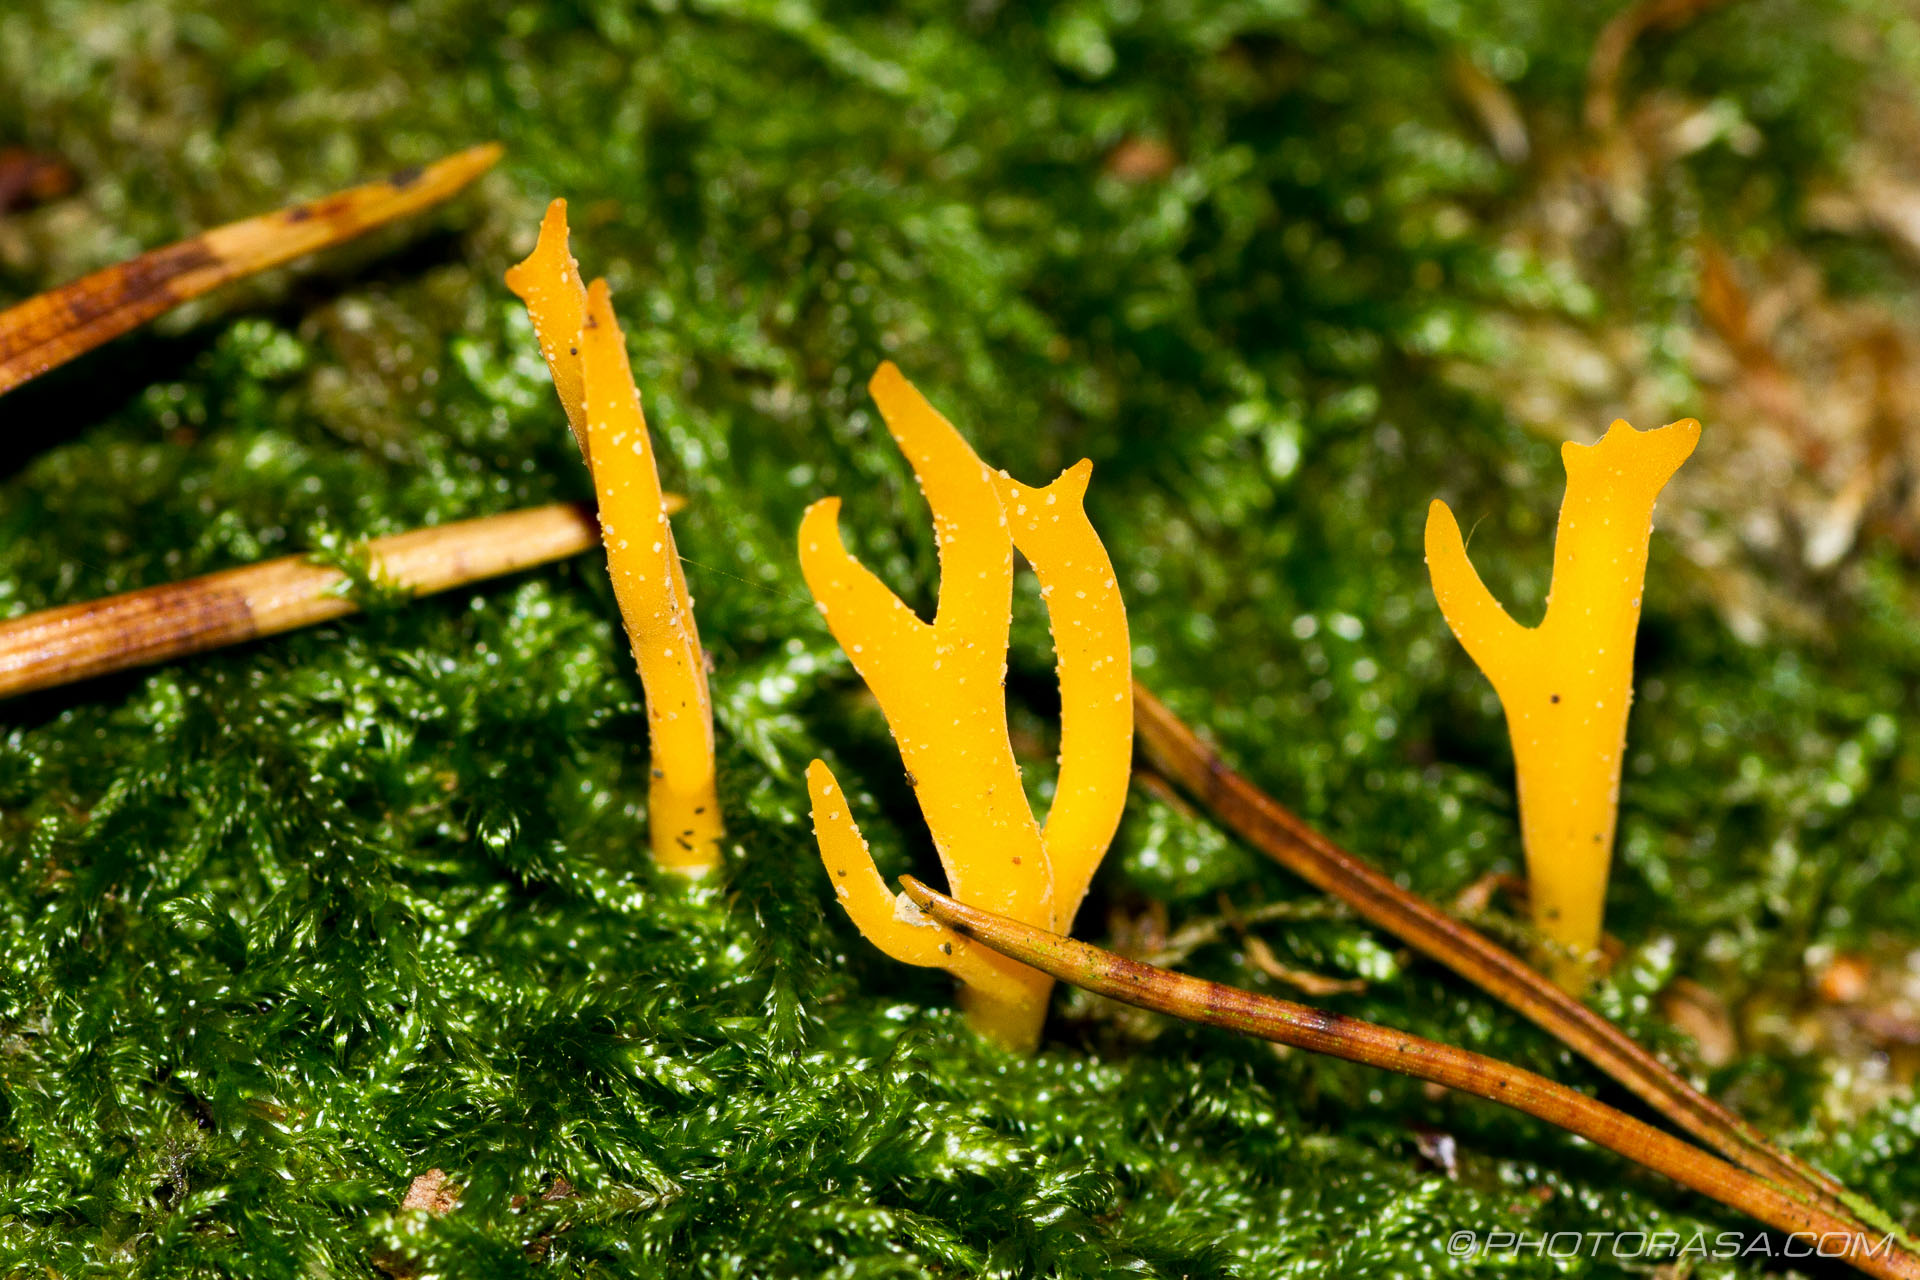 http://photorasa.com/yellow-staghorn-mushroom/three-sets-of-yellow-fingers/